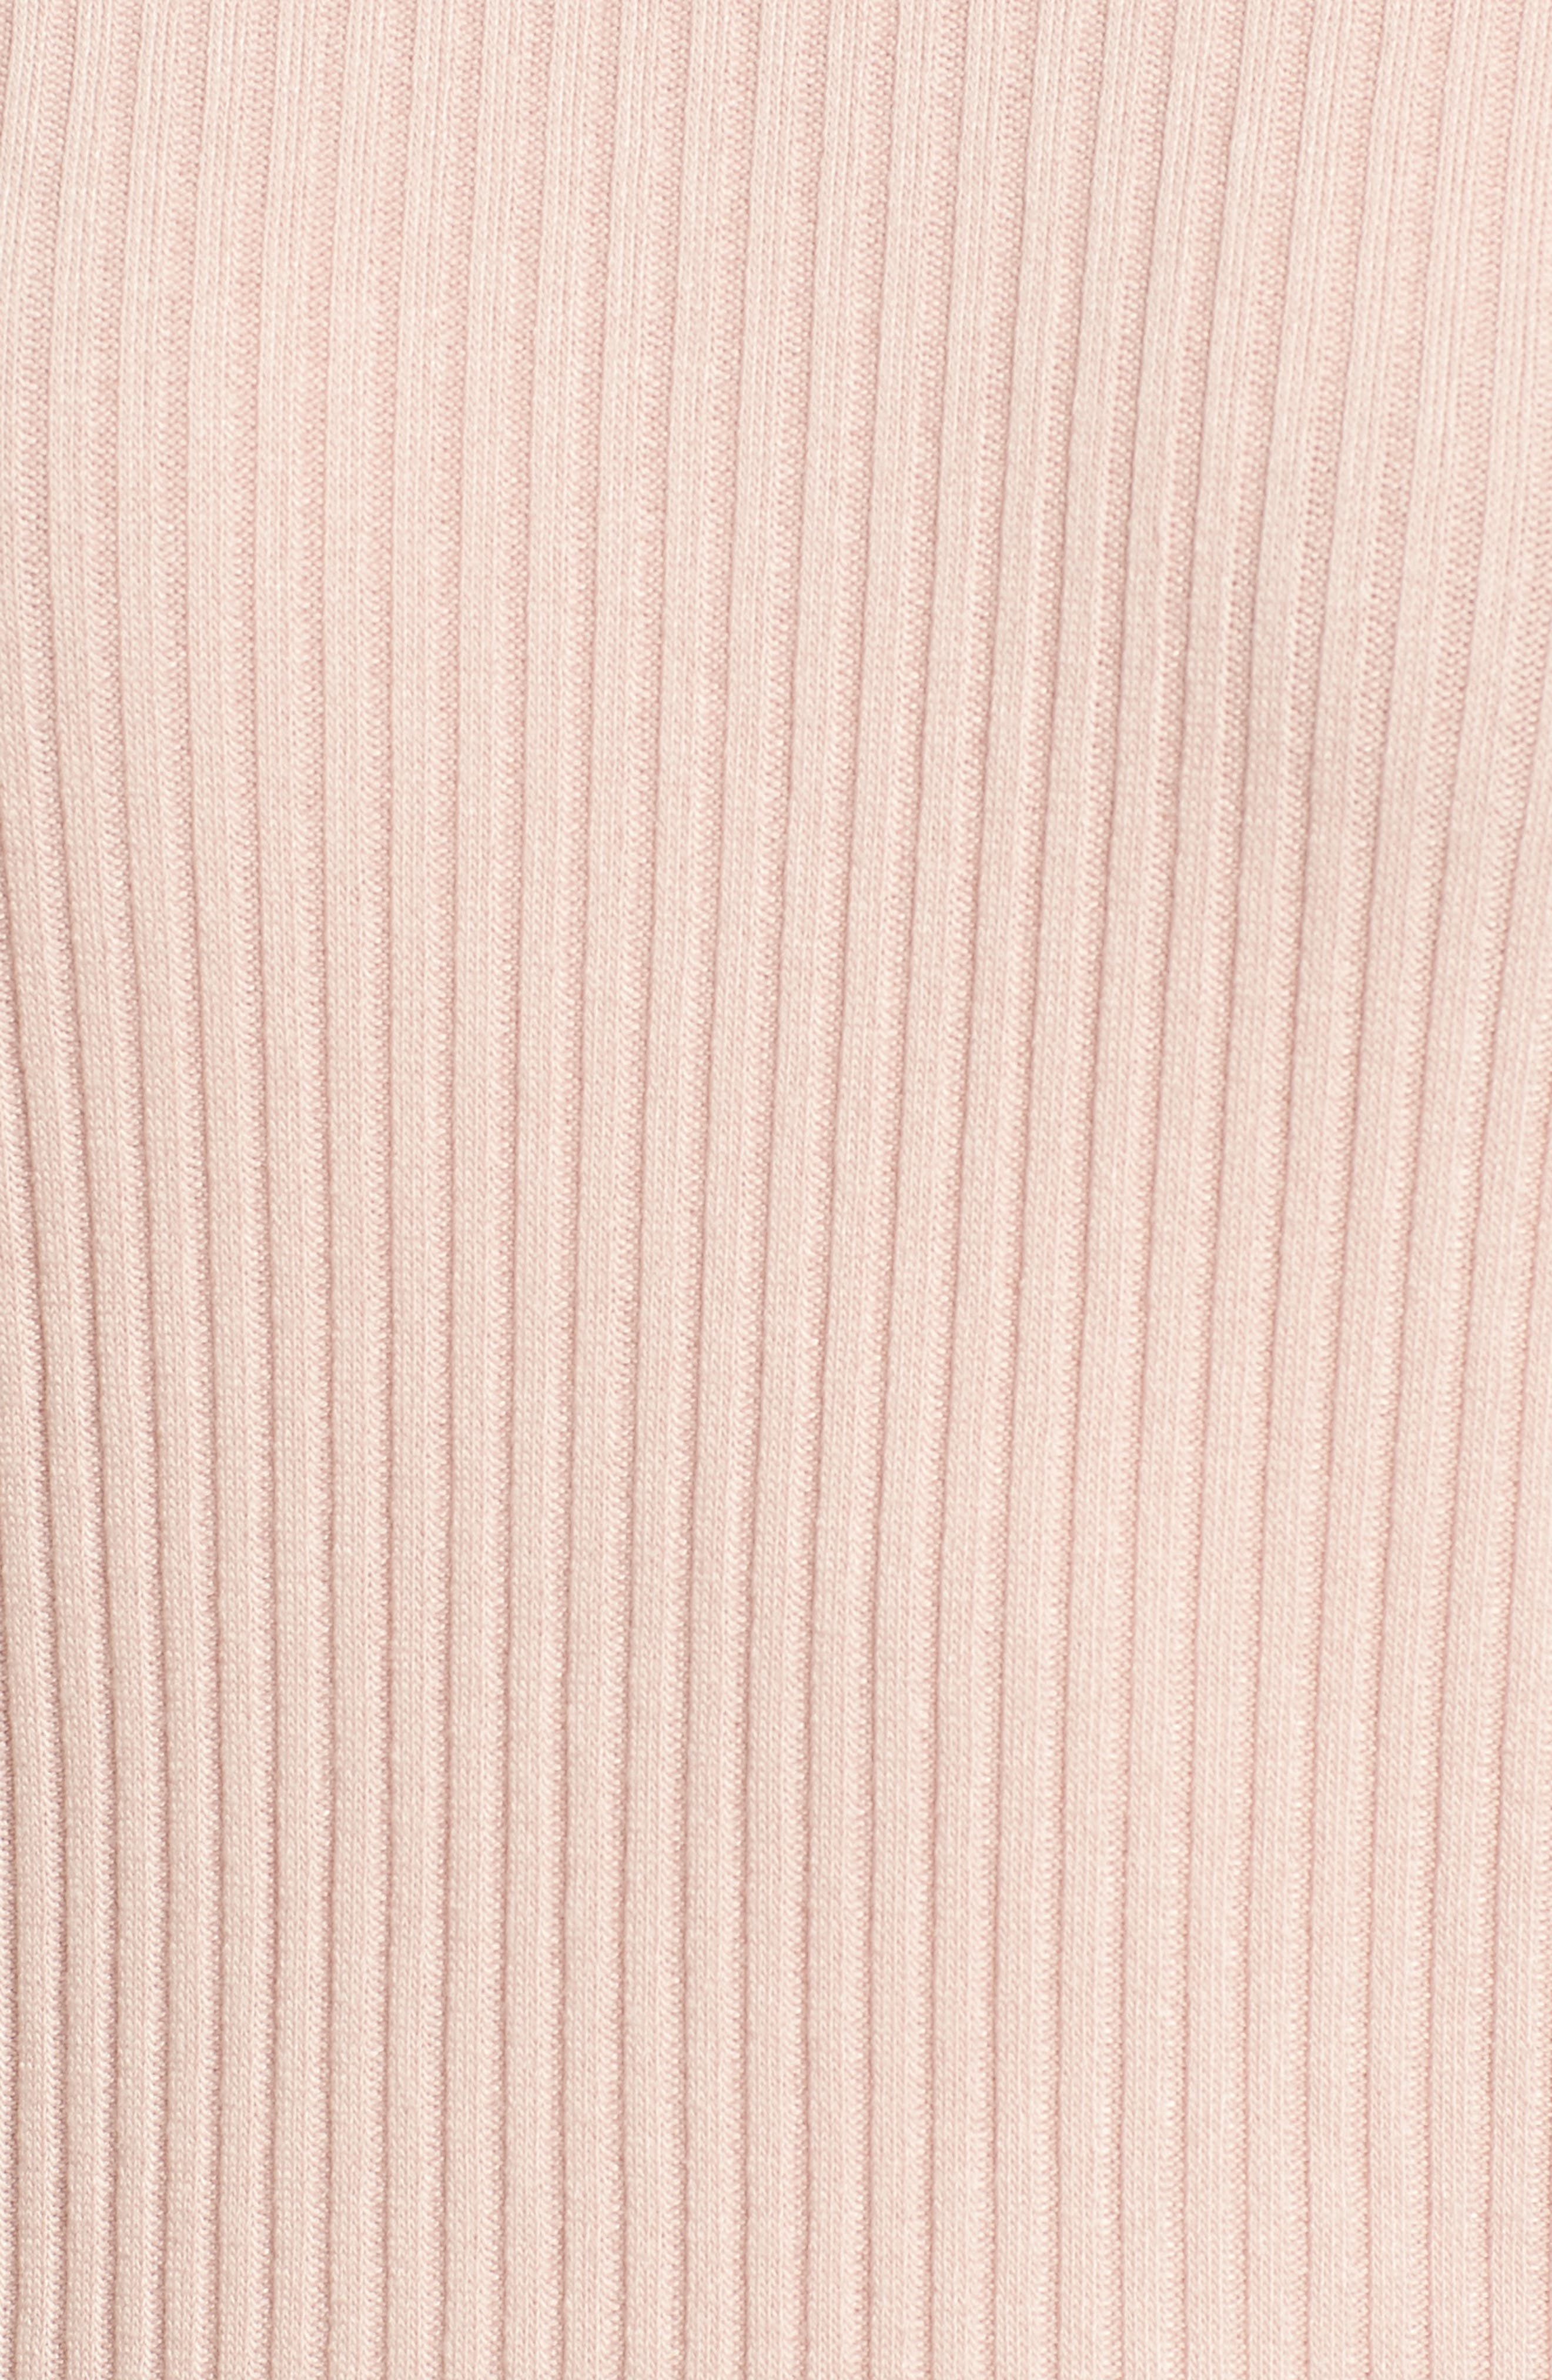 Sylvie Ribbed Mock Neck Sweater,                             Alternate thumbnail 5, color,                             Pink Beige